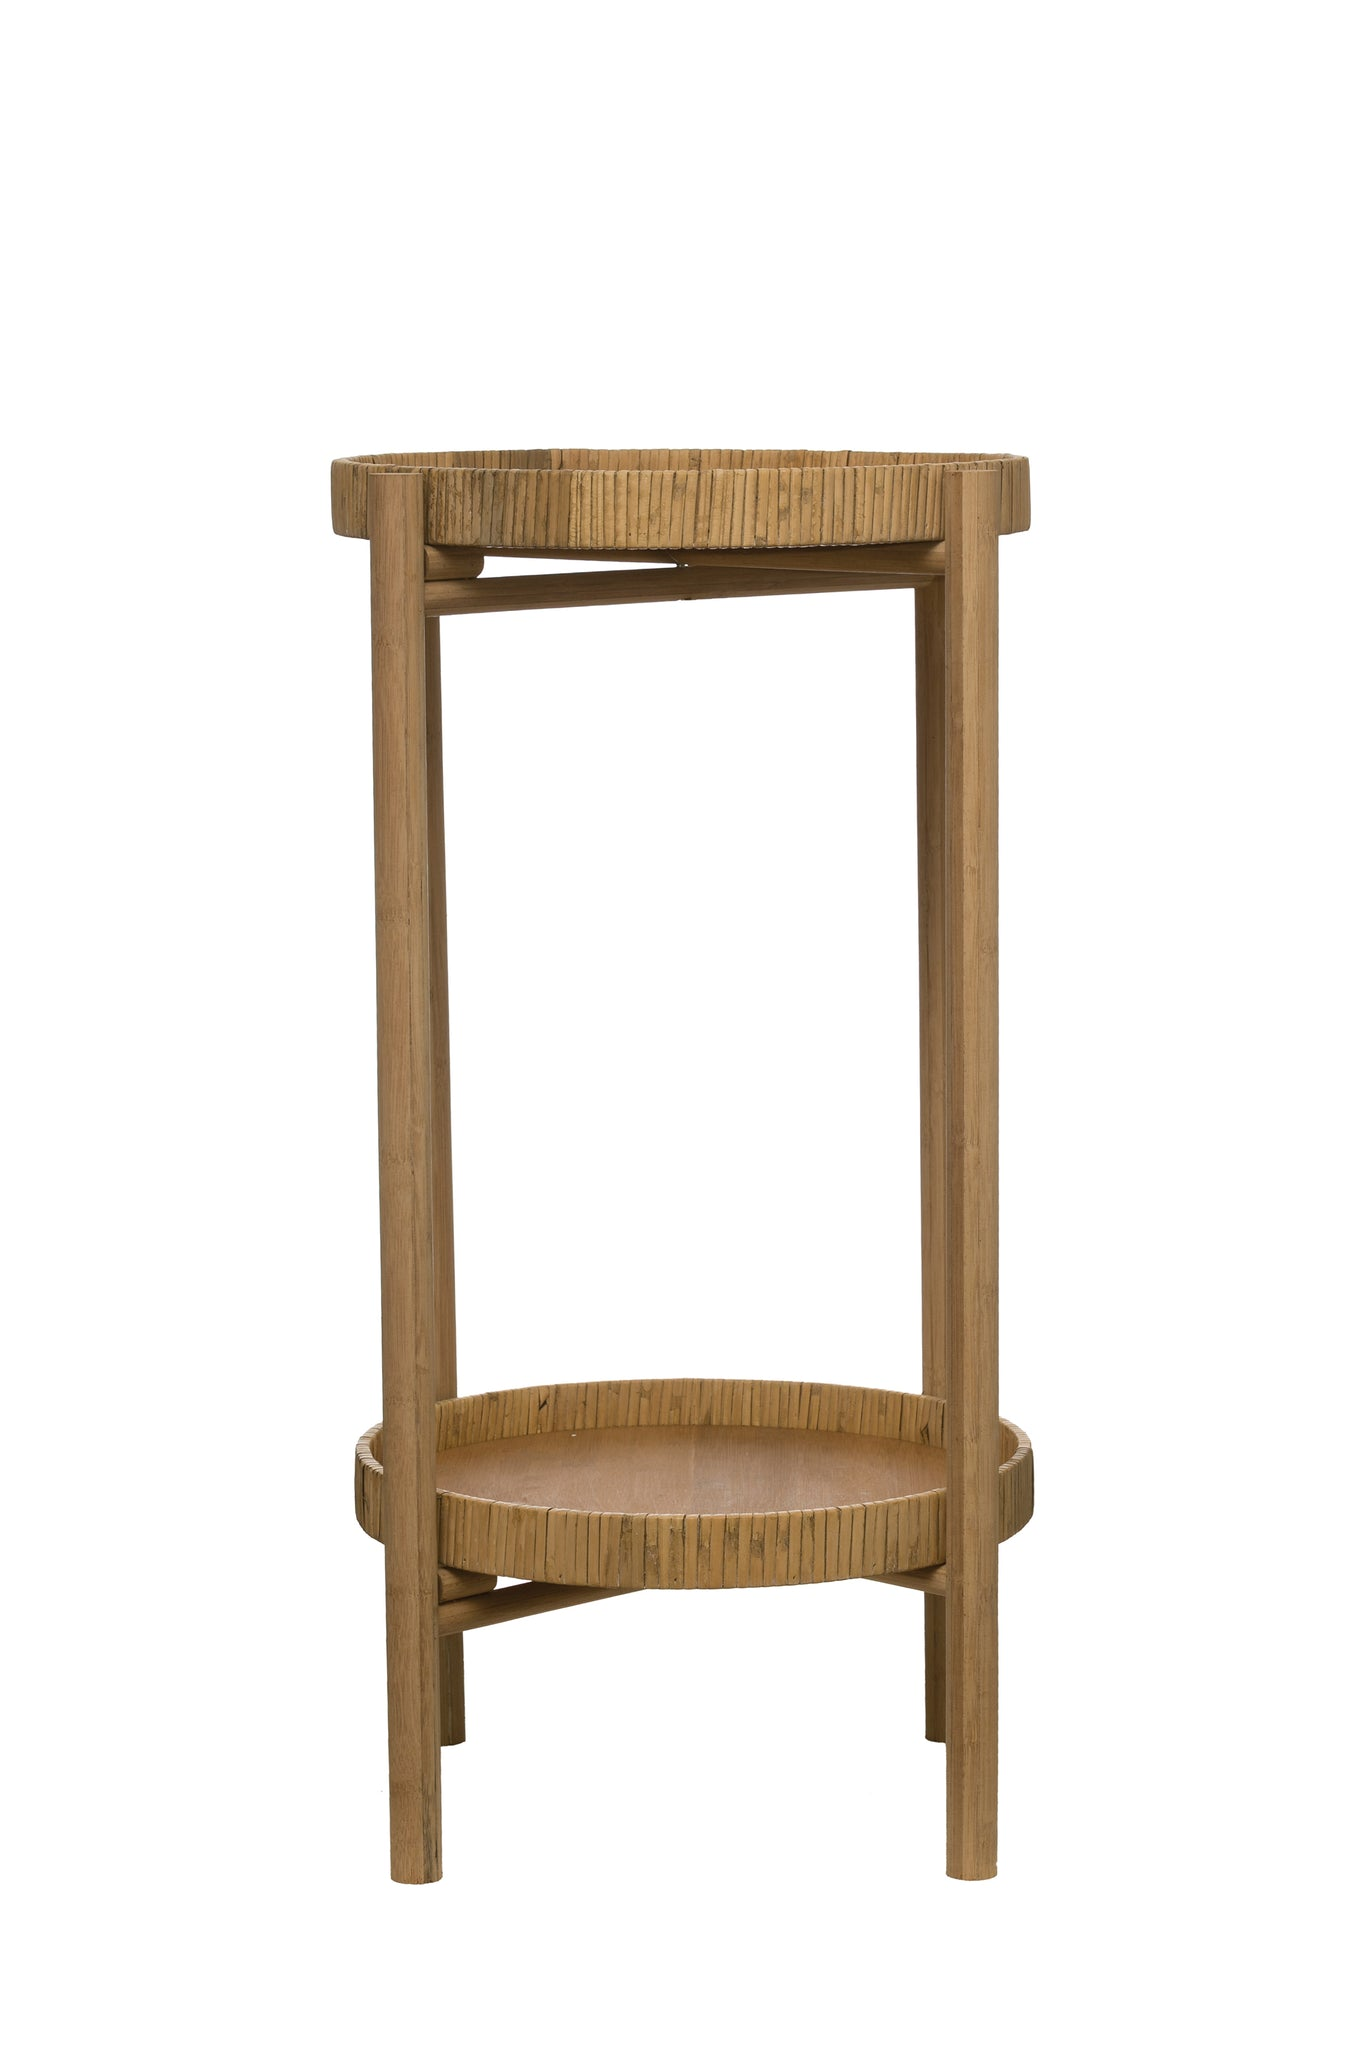 "15.75"" Round Rattan & Bamboo 2-Tier Tray Table with Removable Trays & Wood Frame"